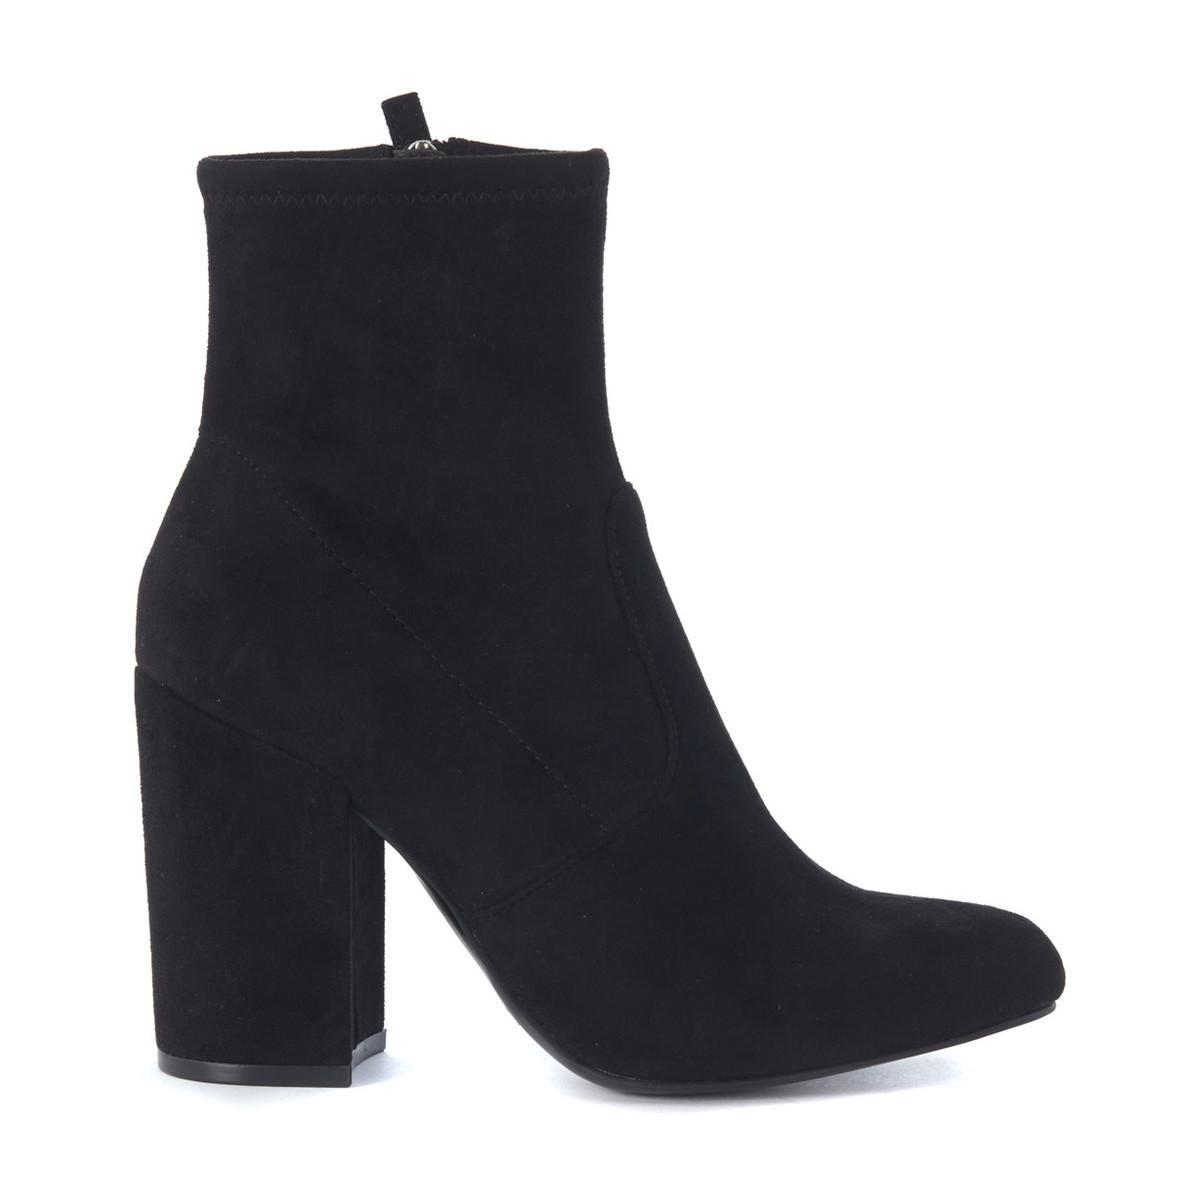 Cheap Get To Buy Steve Madden Gaze leather ankle boots women's Low Ankle Boots in Deals Sale Online Shop Offer Cheap Online Cheap Sale Brand New Unisex Clean And Classic Hm7T4xpQcr